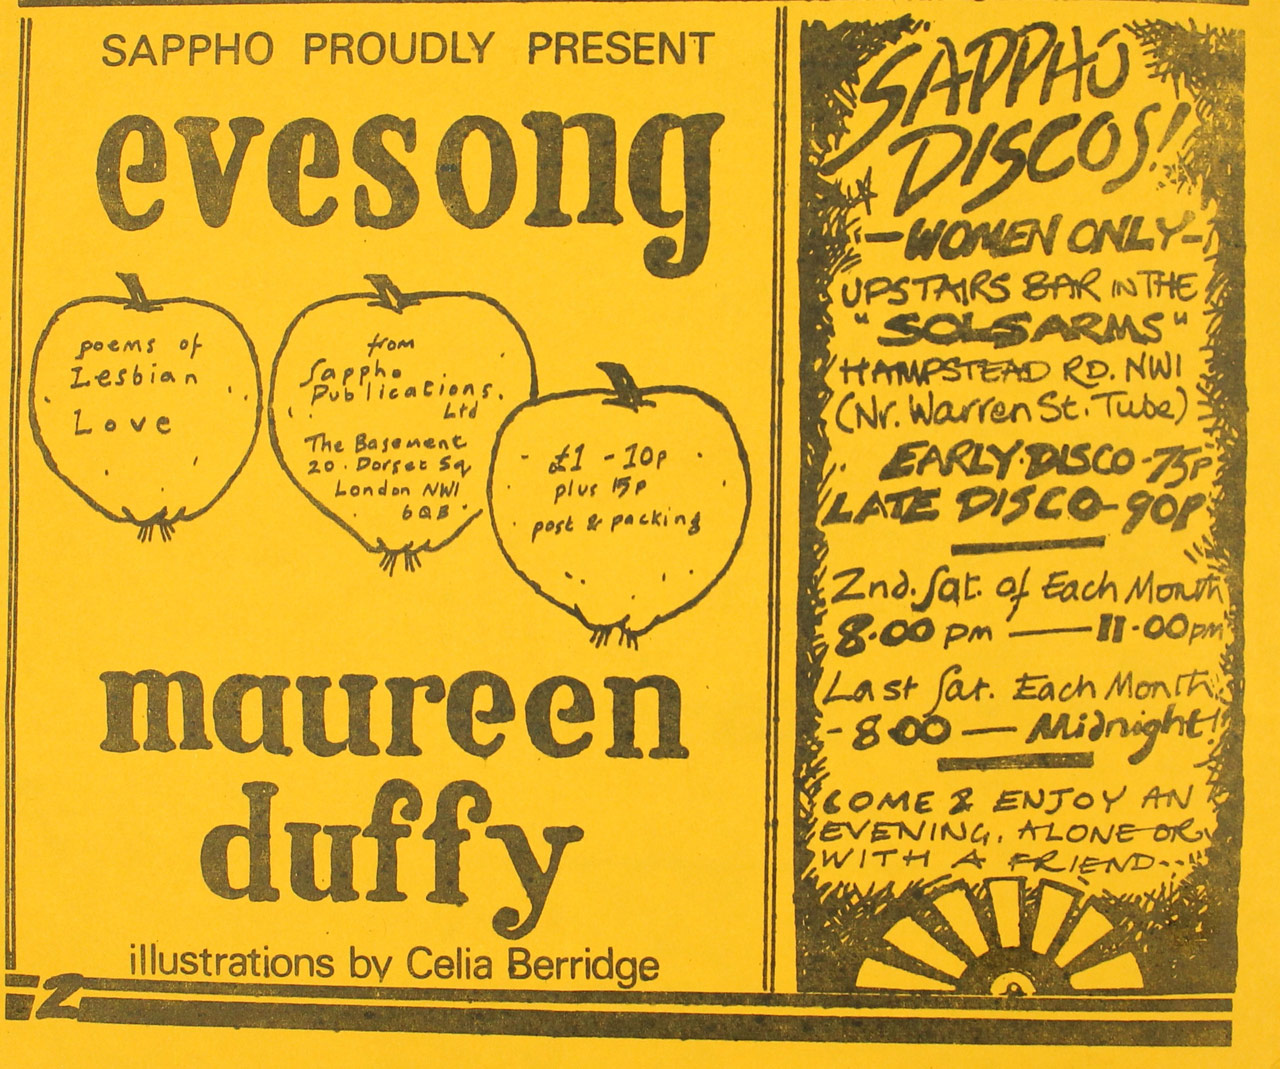 Sappho Disco and Maureen Duffy advertisement, Sappho, Volume 7, Number 7